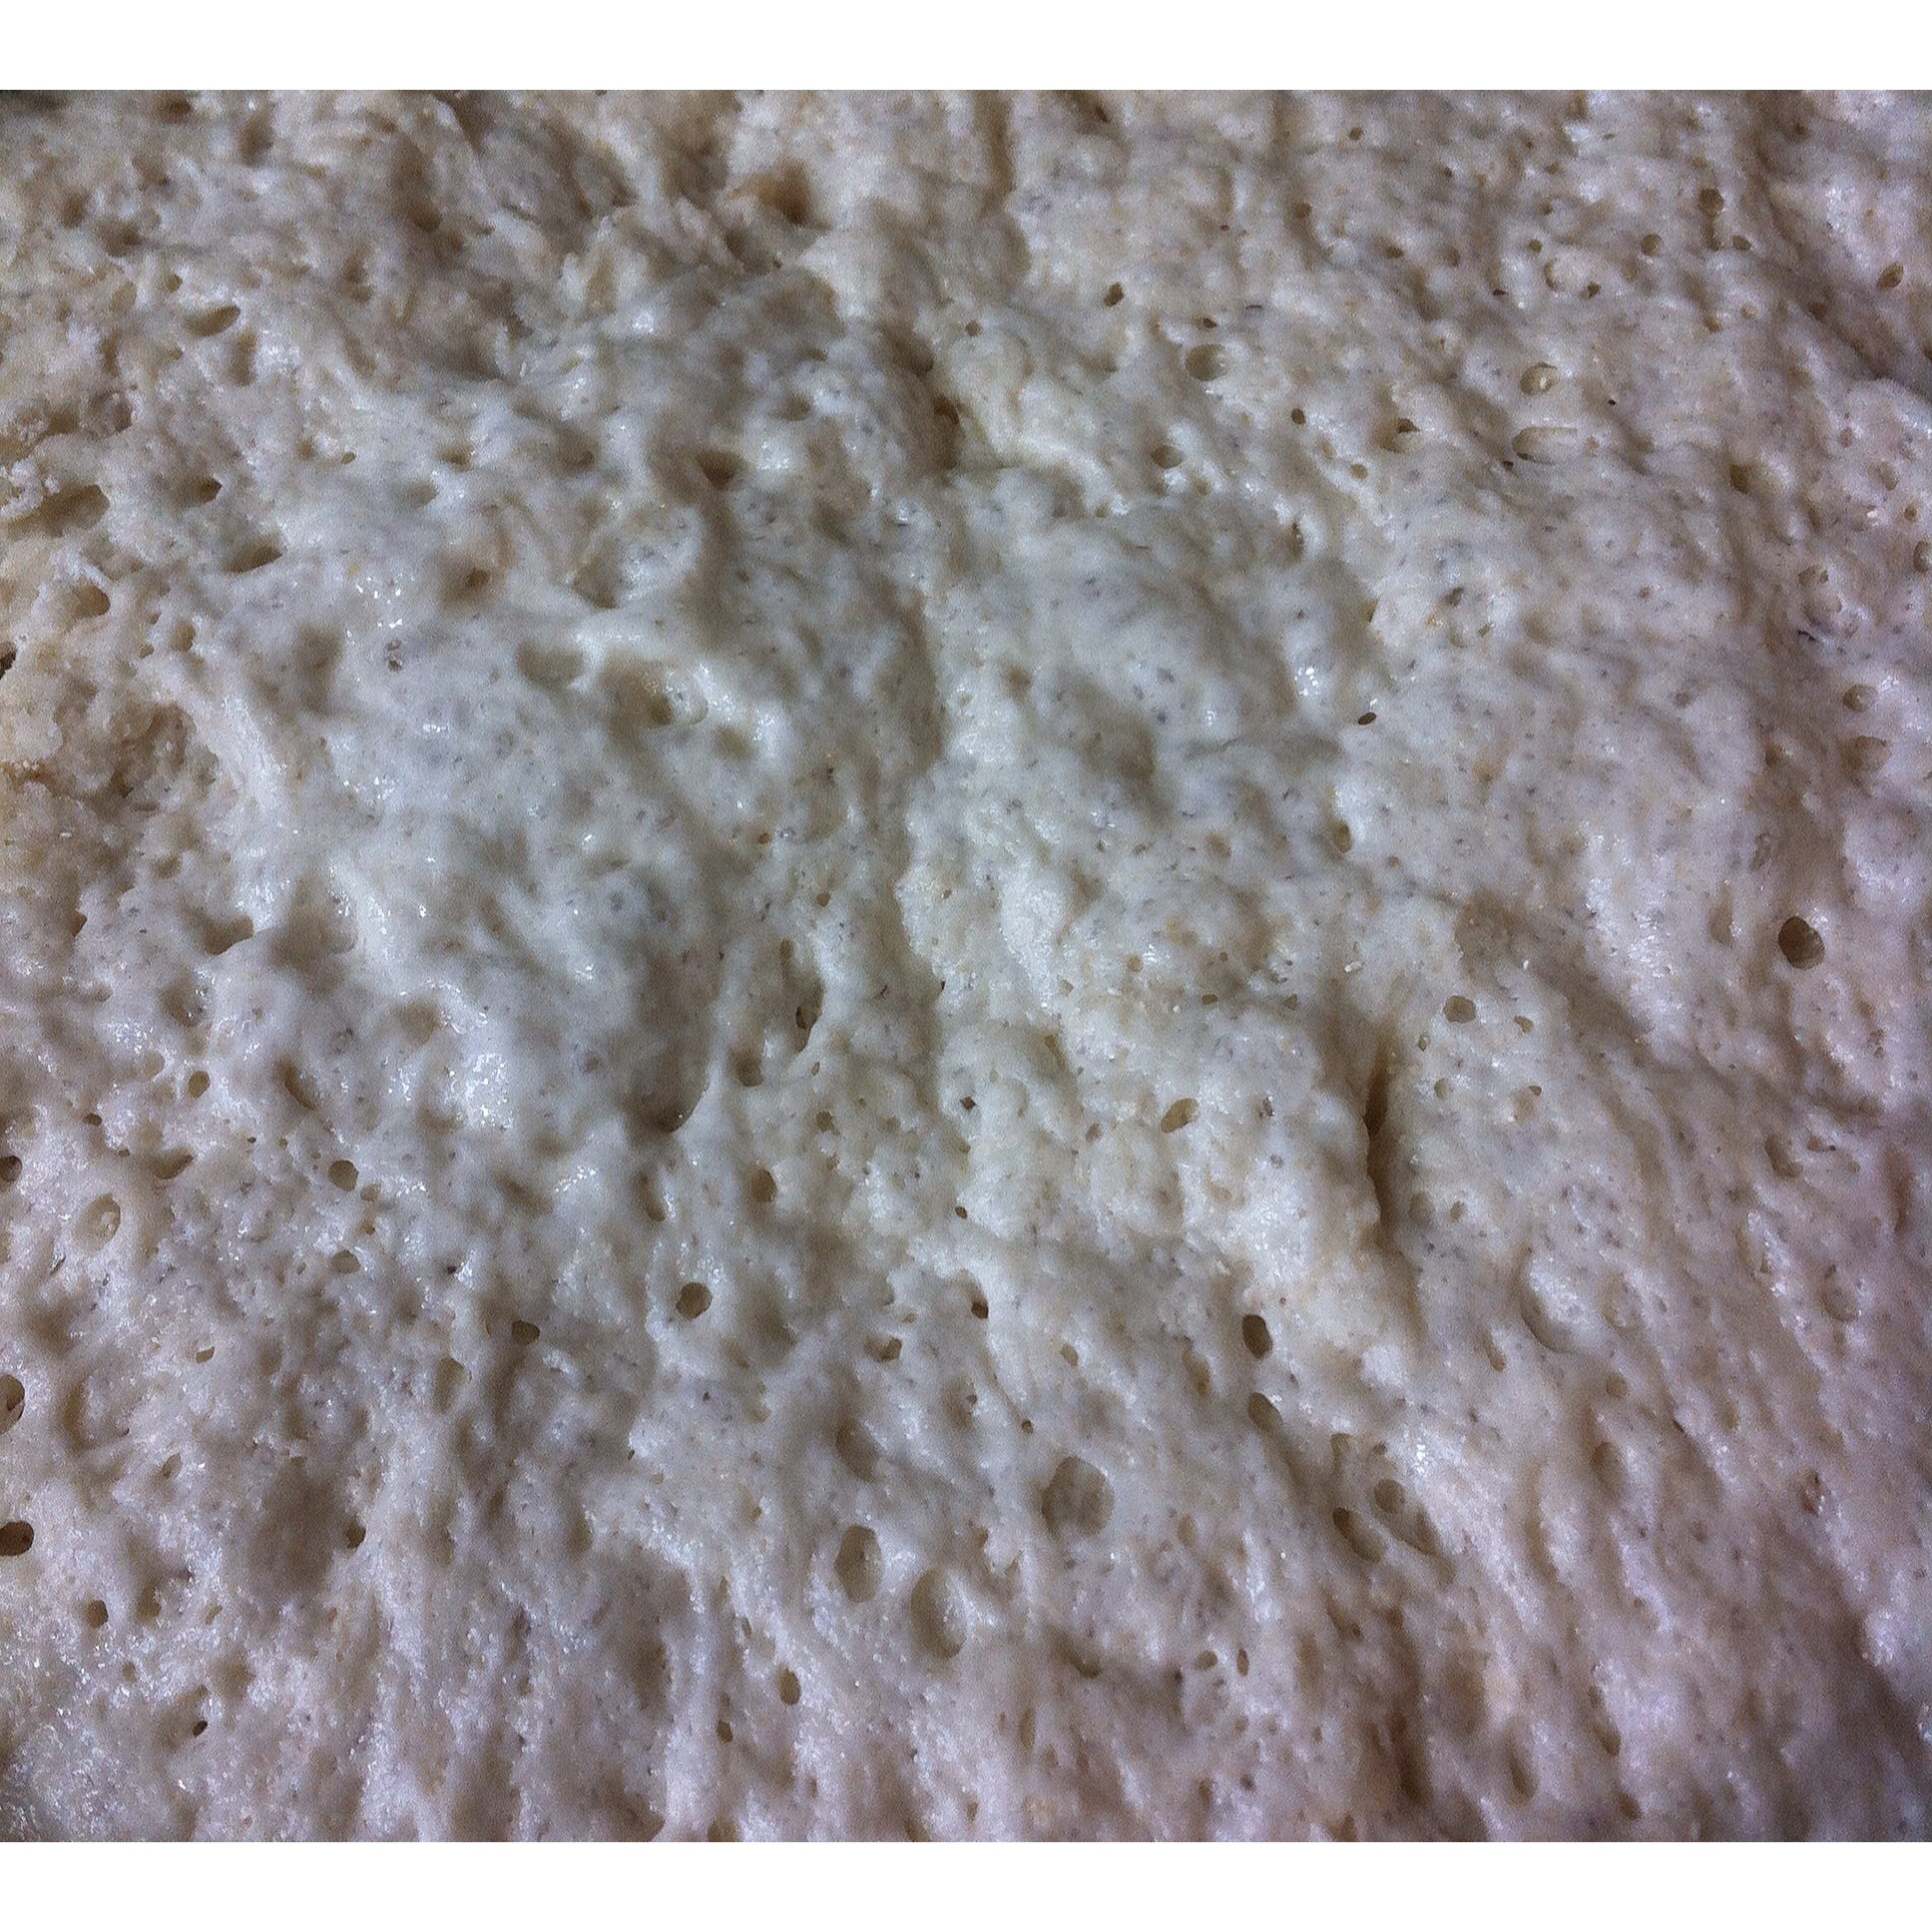 Forbidden Rice Blog | Pizza Dough